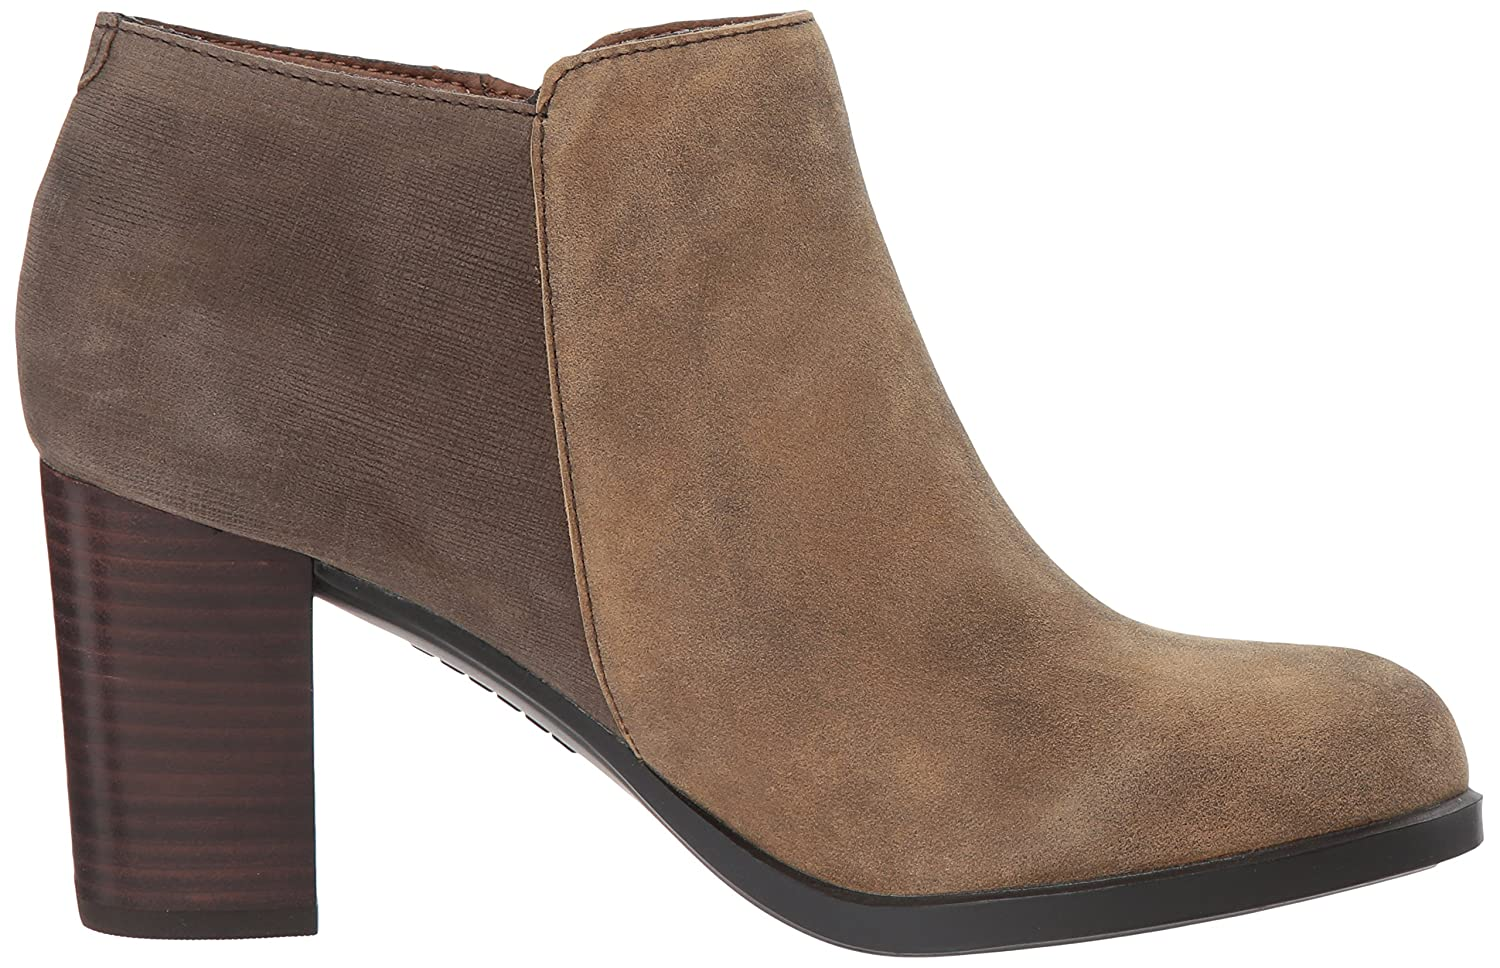 Sperry Top-Sider Women's Dasher Lille Ankle Bootie B019X5CDLG 9.5 B(M) US|Brown